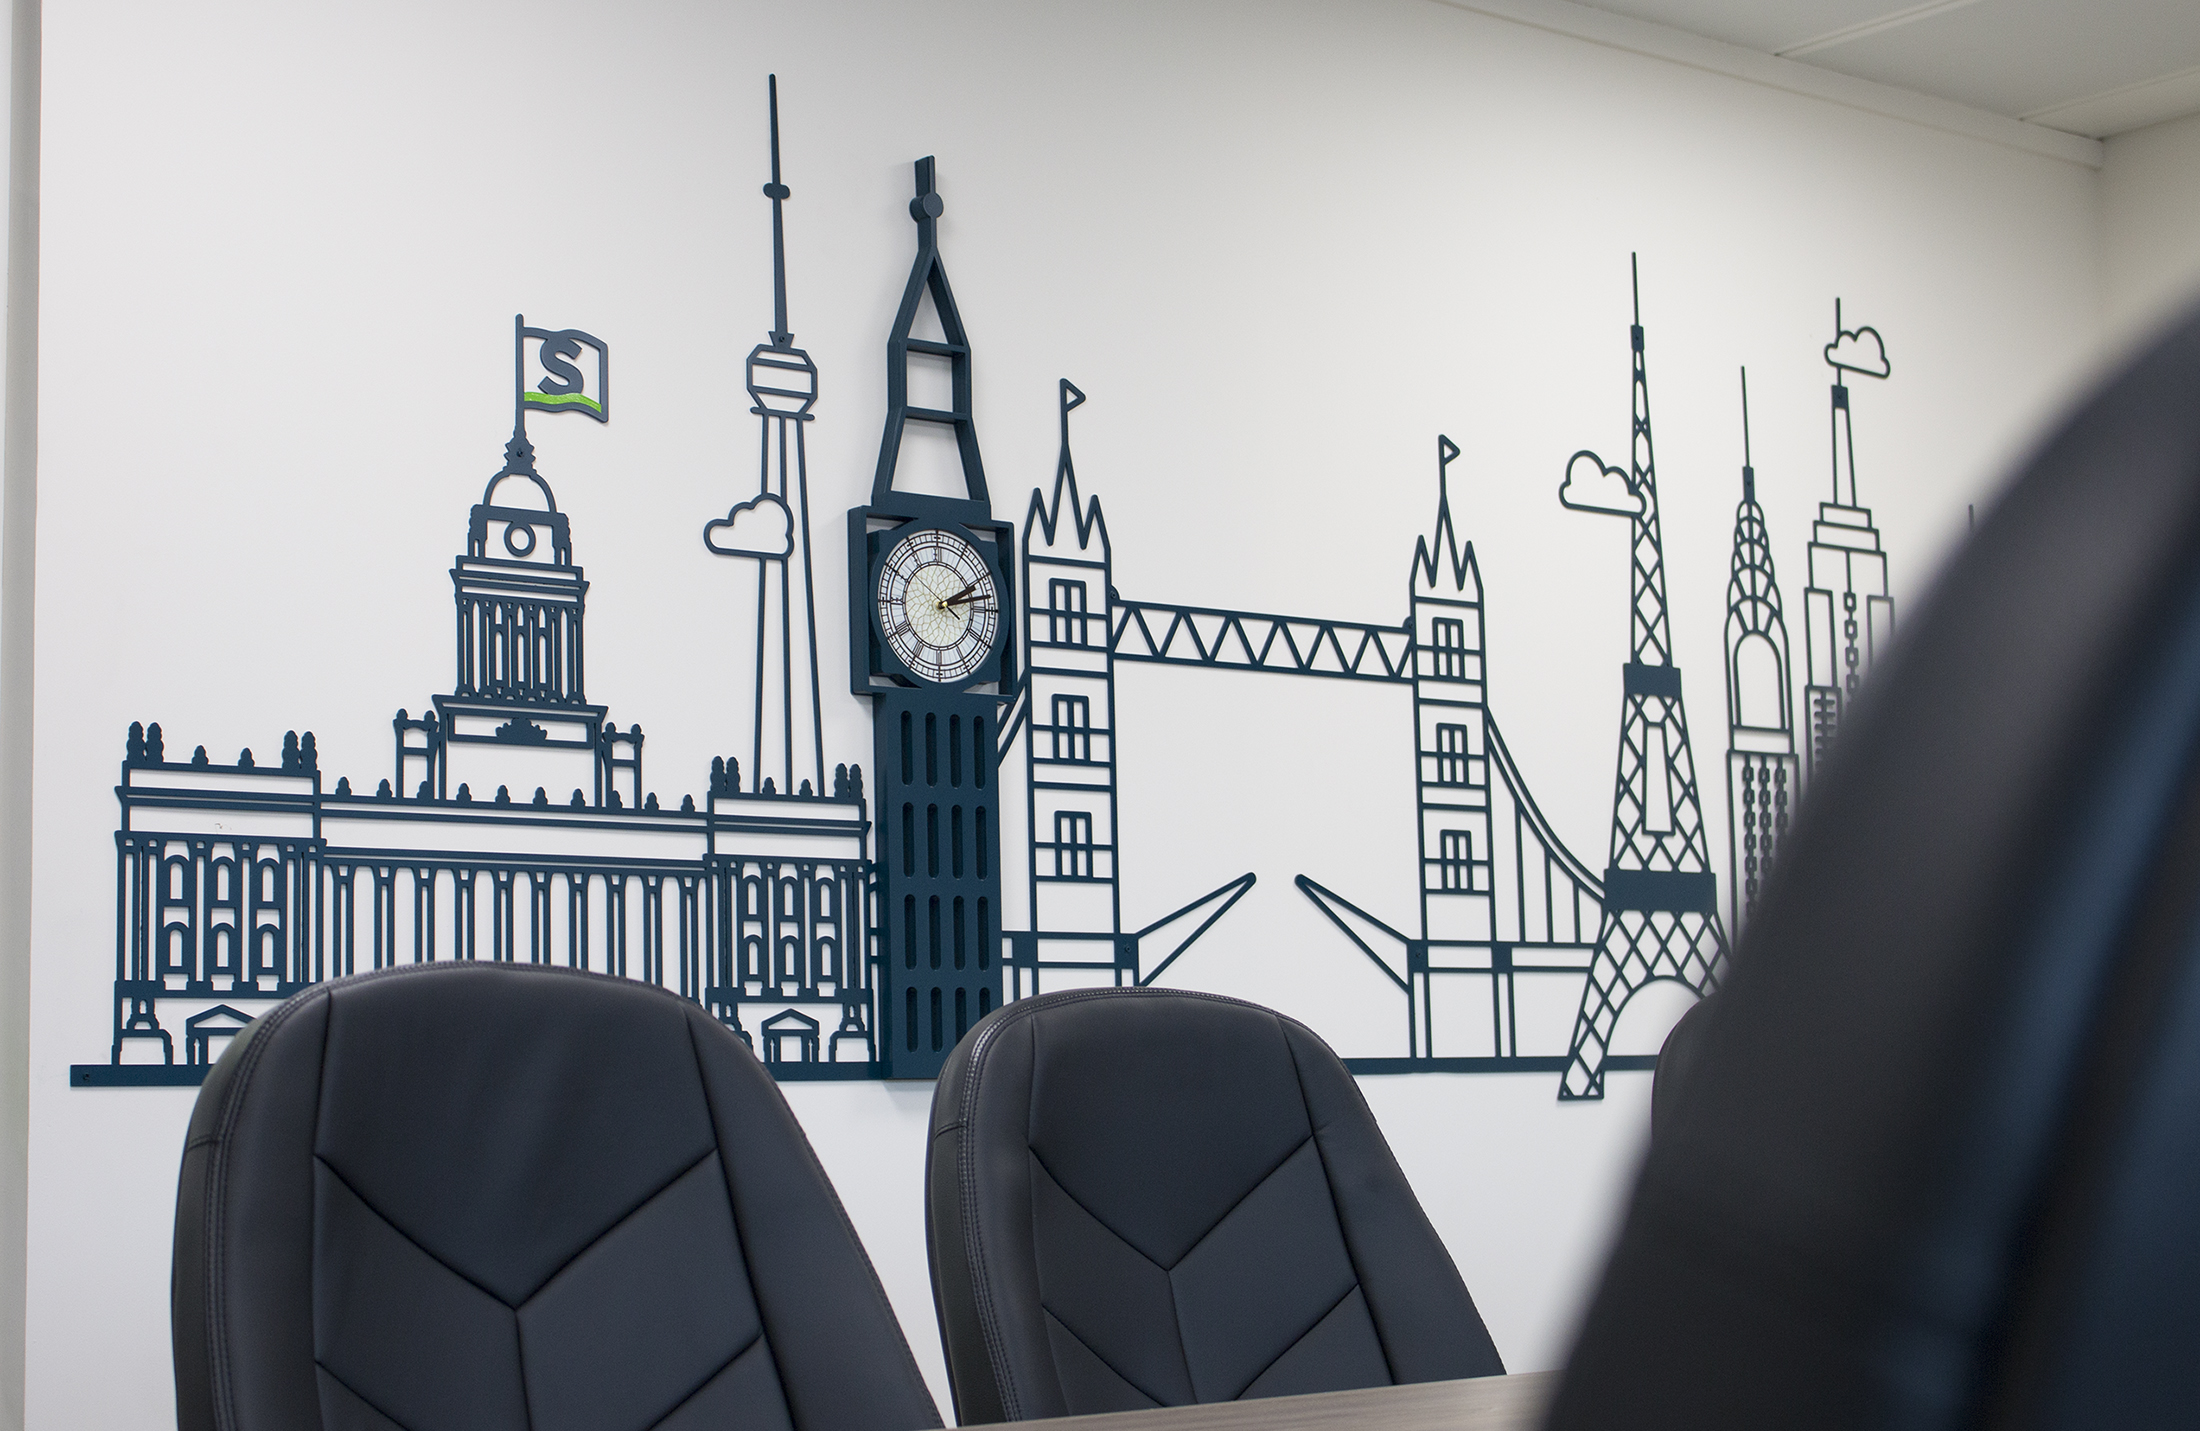 Bespoke metal skyline, inline with the Sentio brand - with working clock face